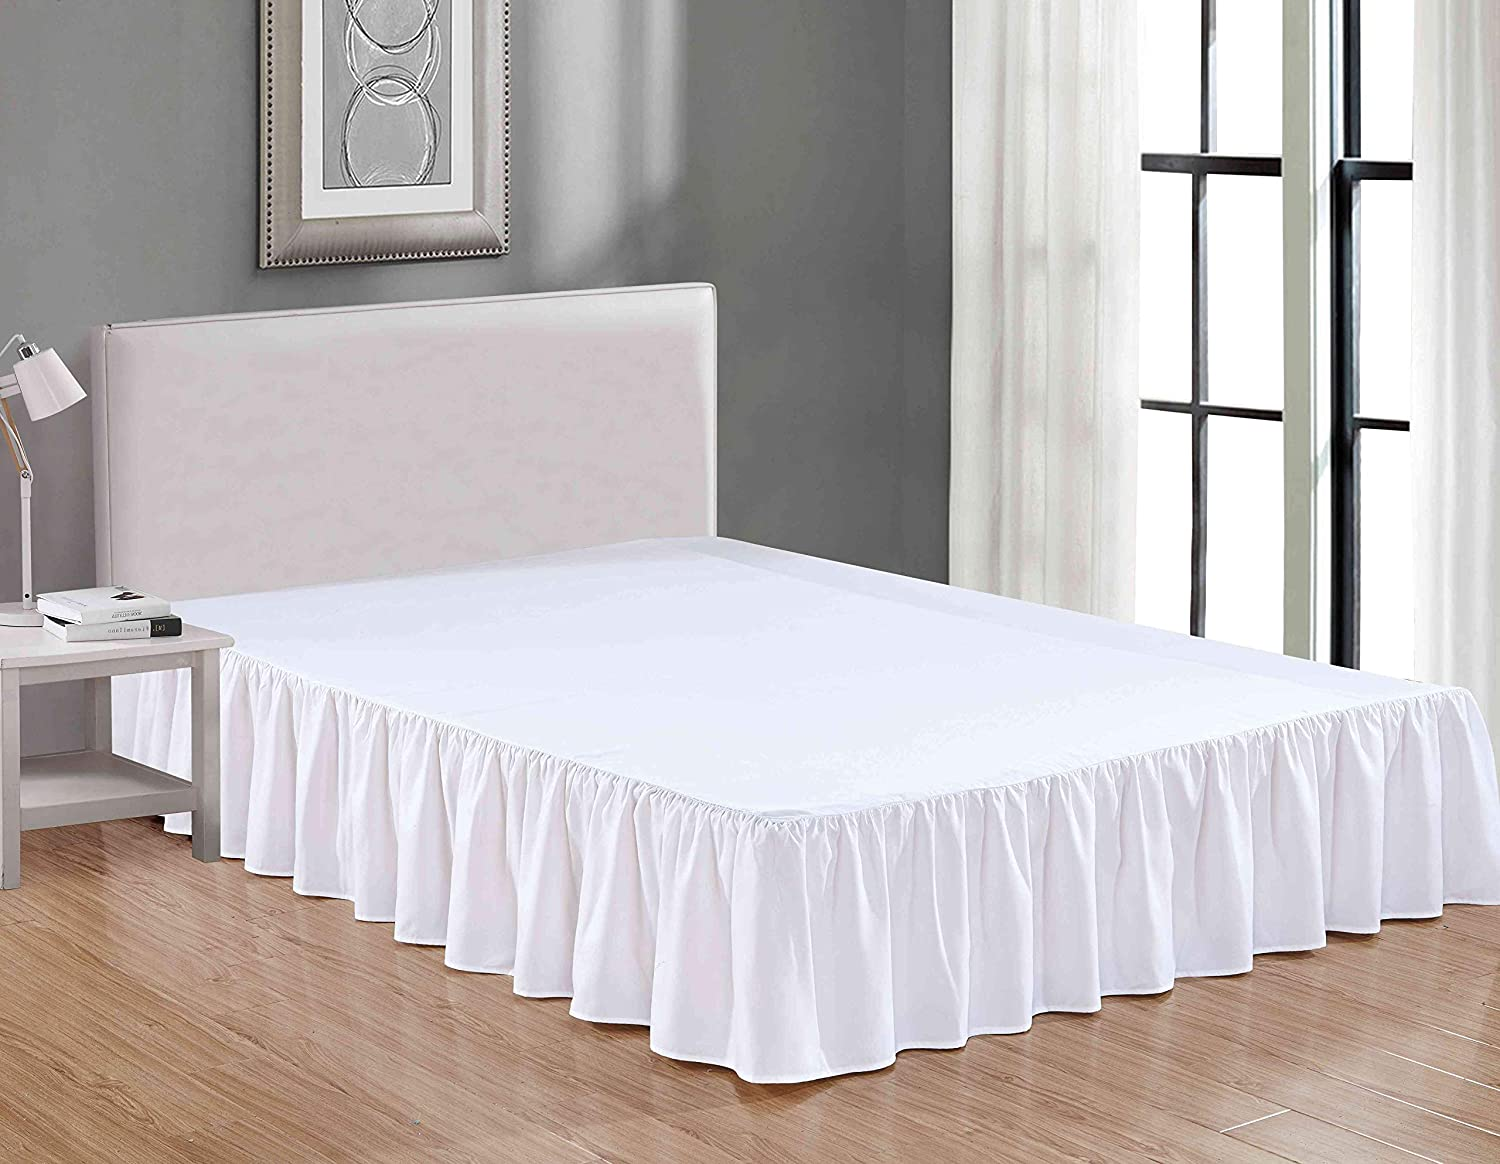 Sheets Beyond Wrap Around Solid Qualit Microfiber Hotel Luxury Ranking 1 year warranty TOP18